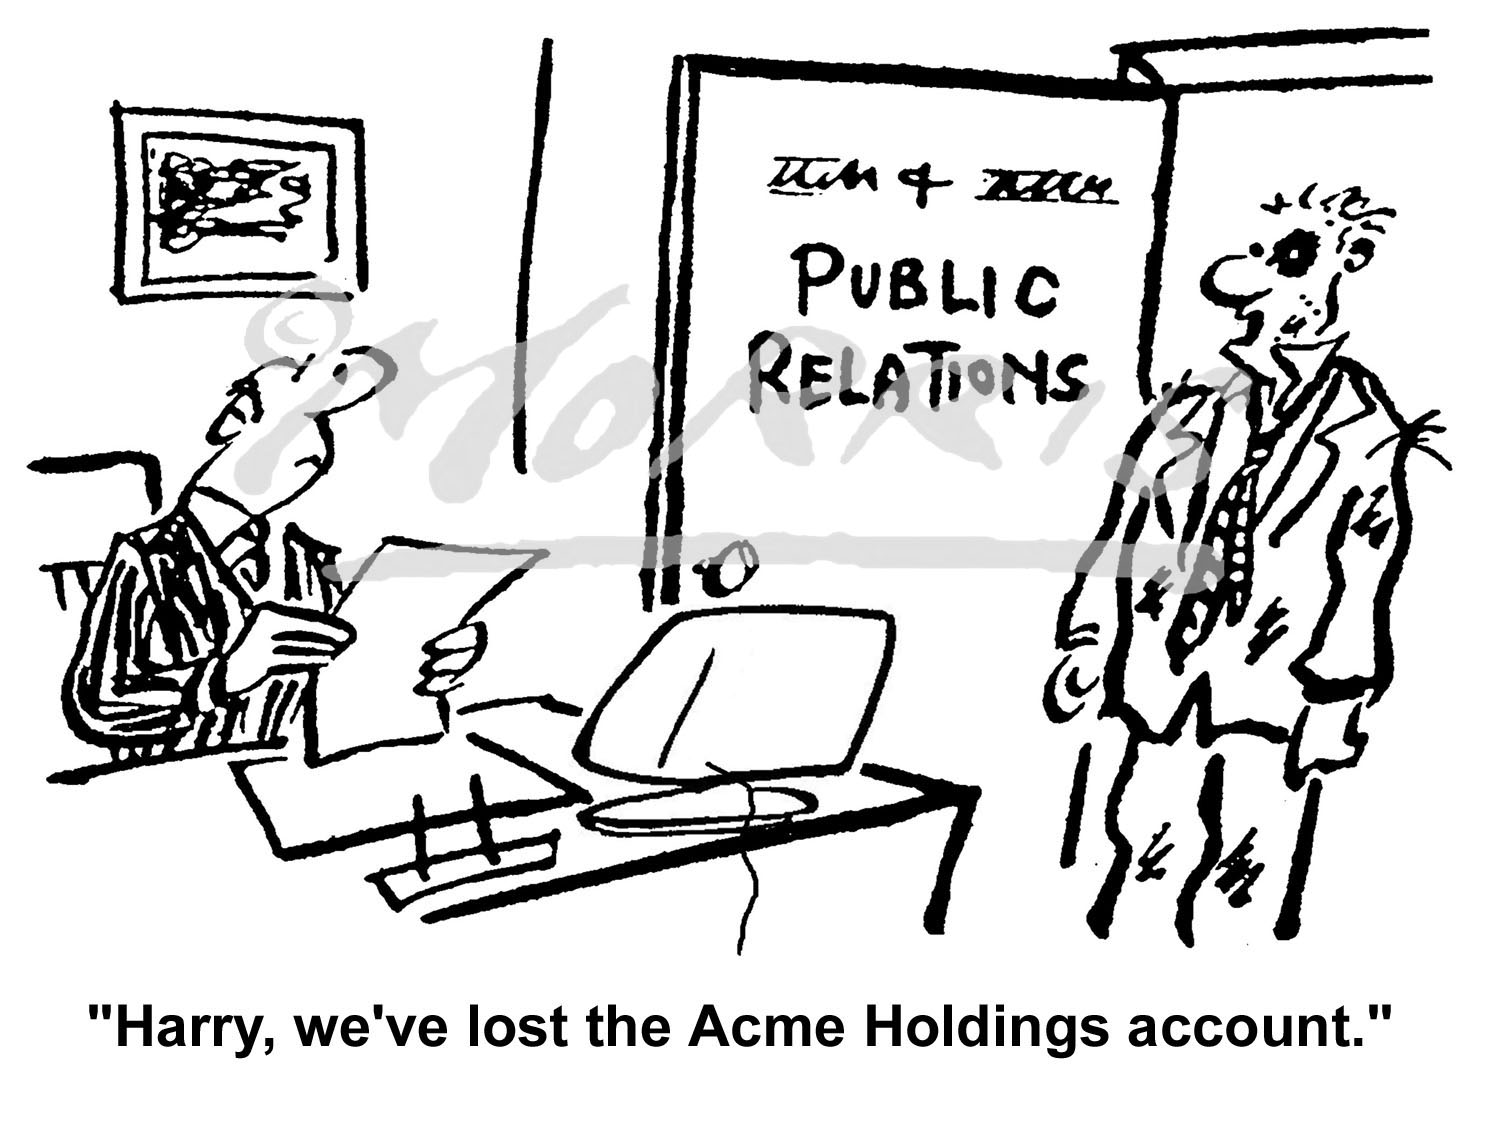 Public relations business cartoon – Ref: 0424bw